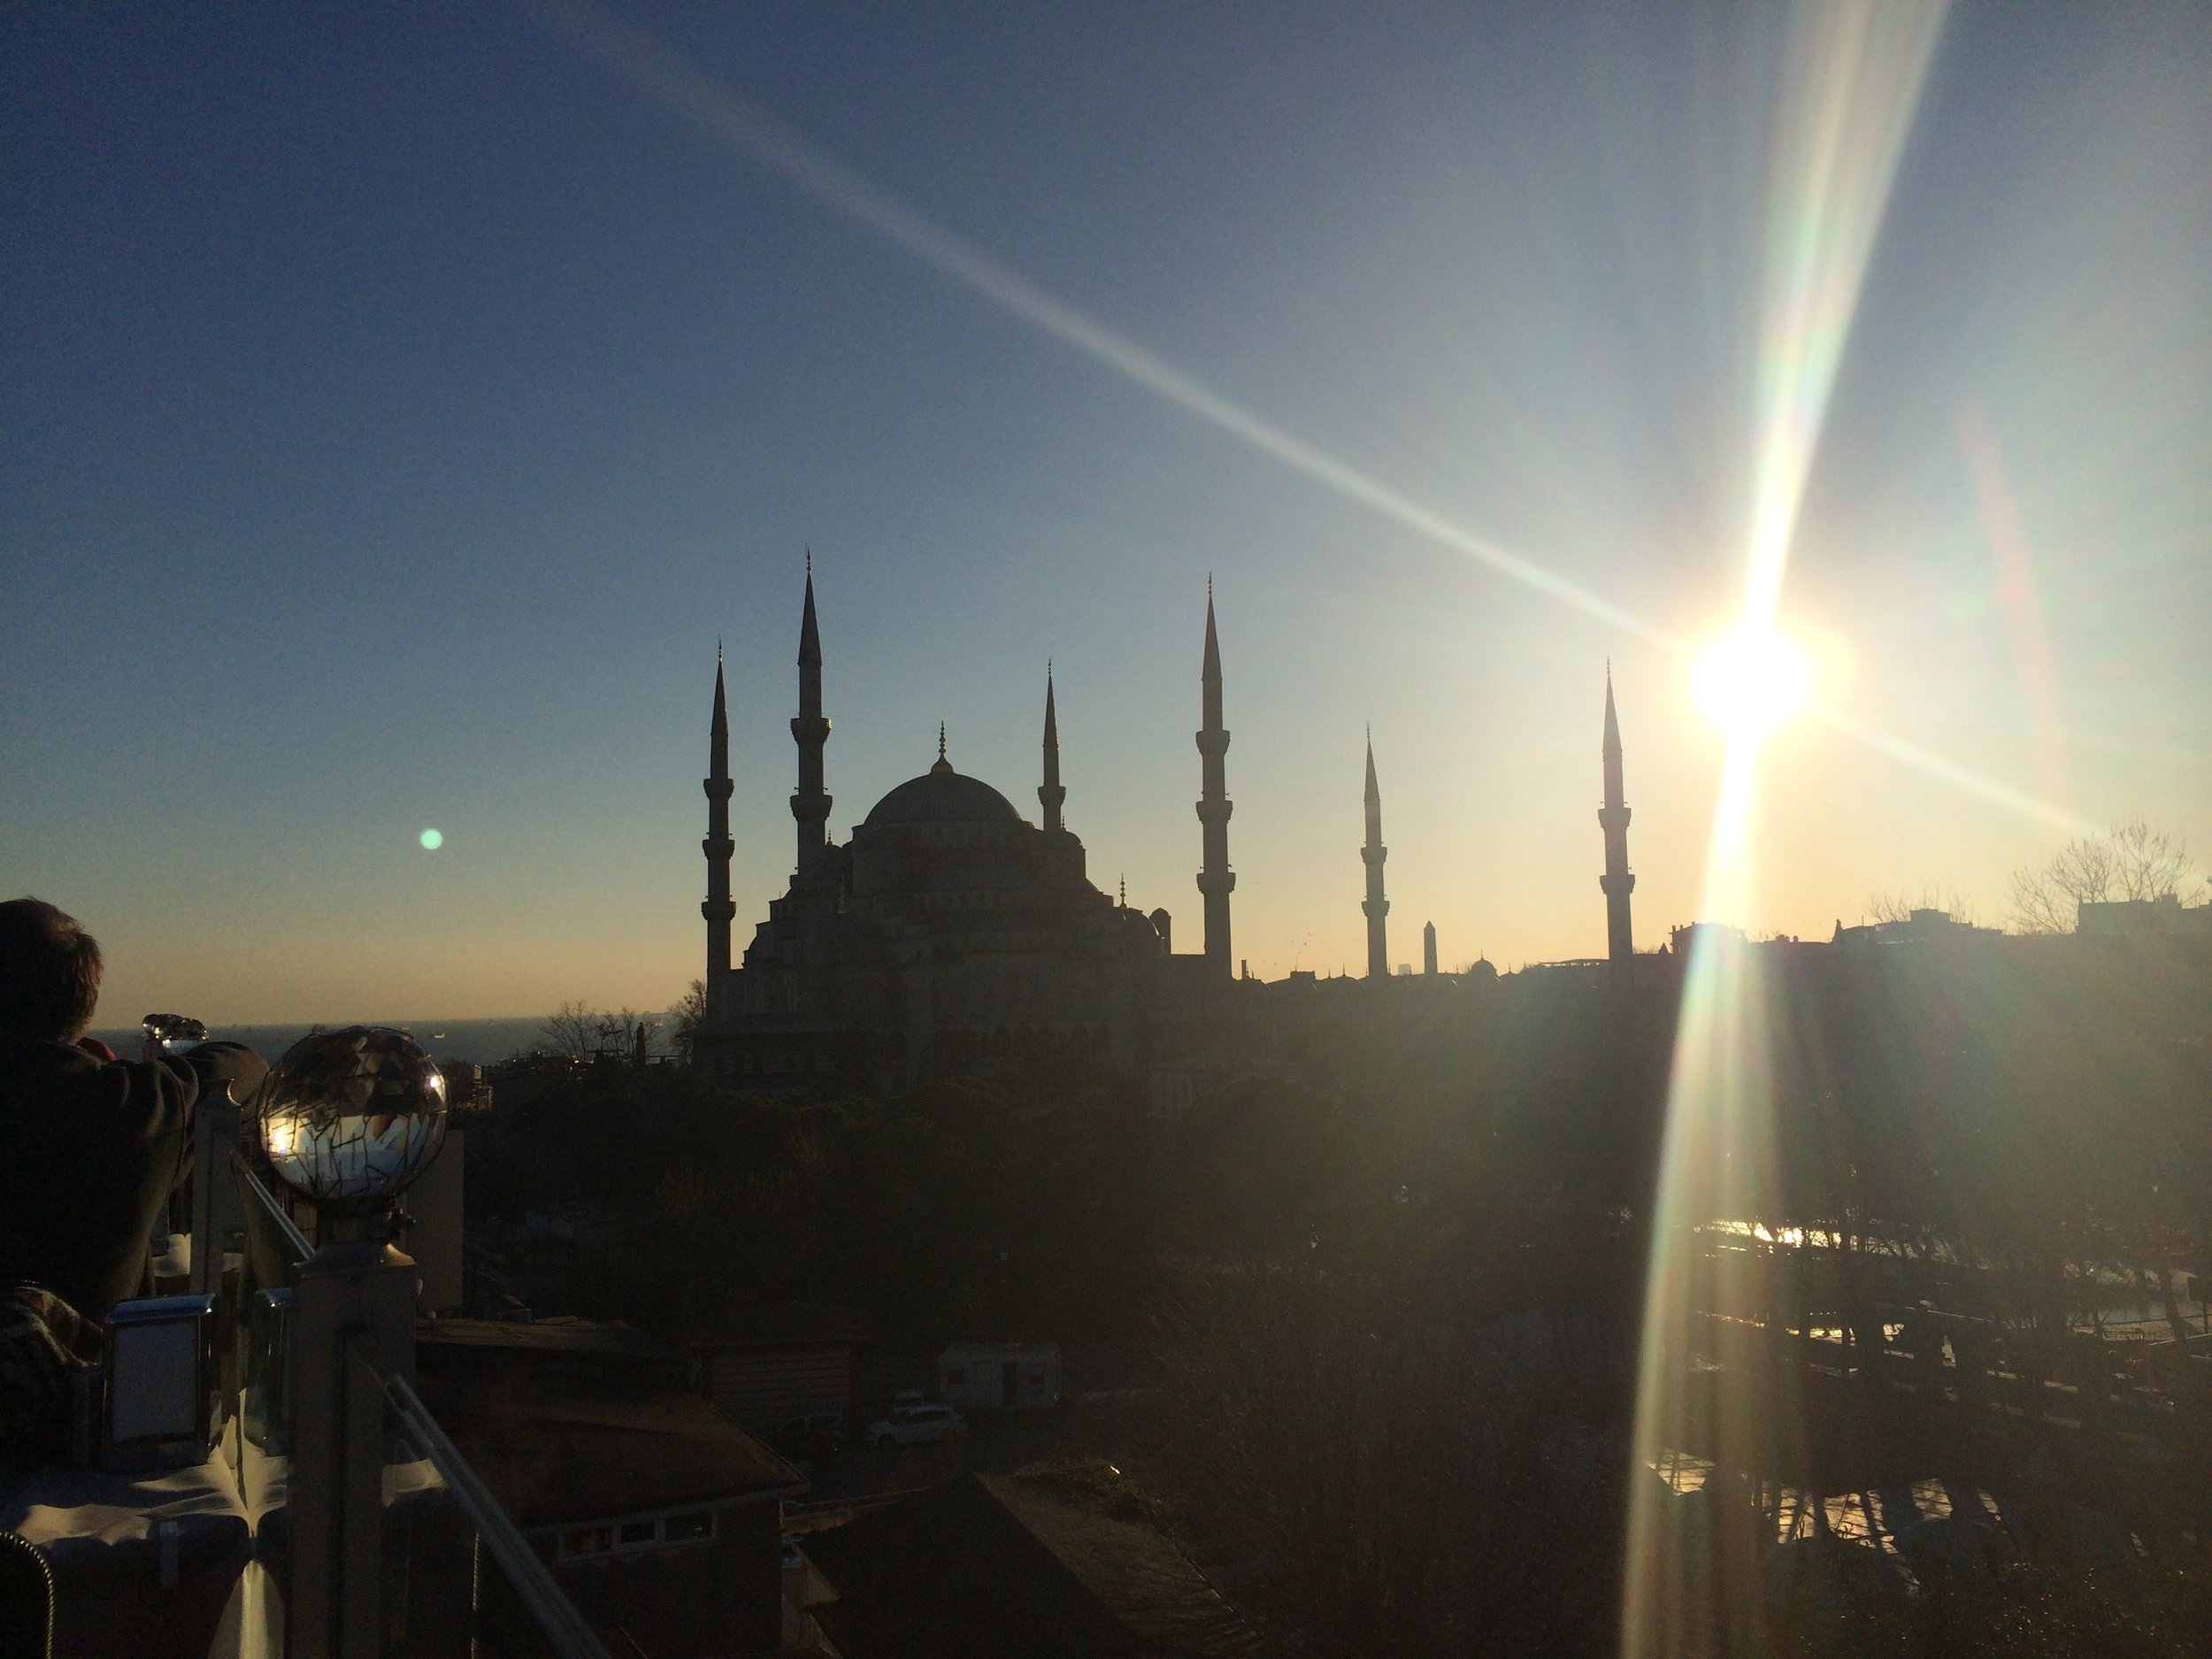 The Sultan Ahmed Mosque (the Blue Mosque) - 1616 AD - at sunset